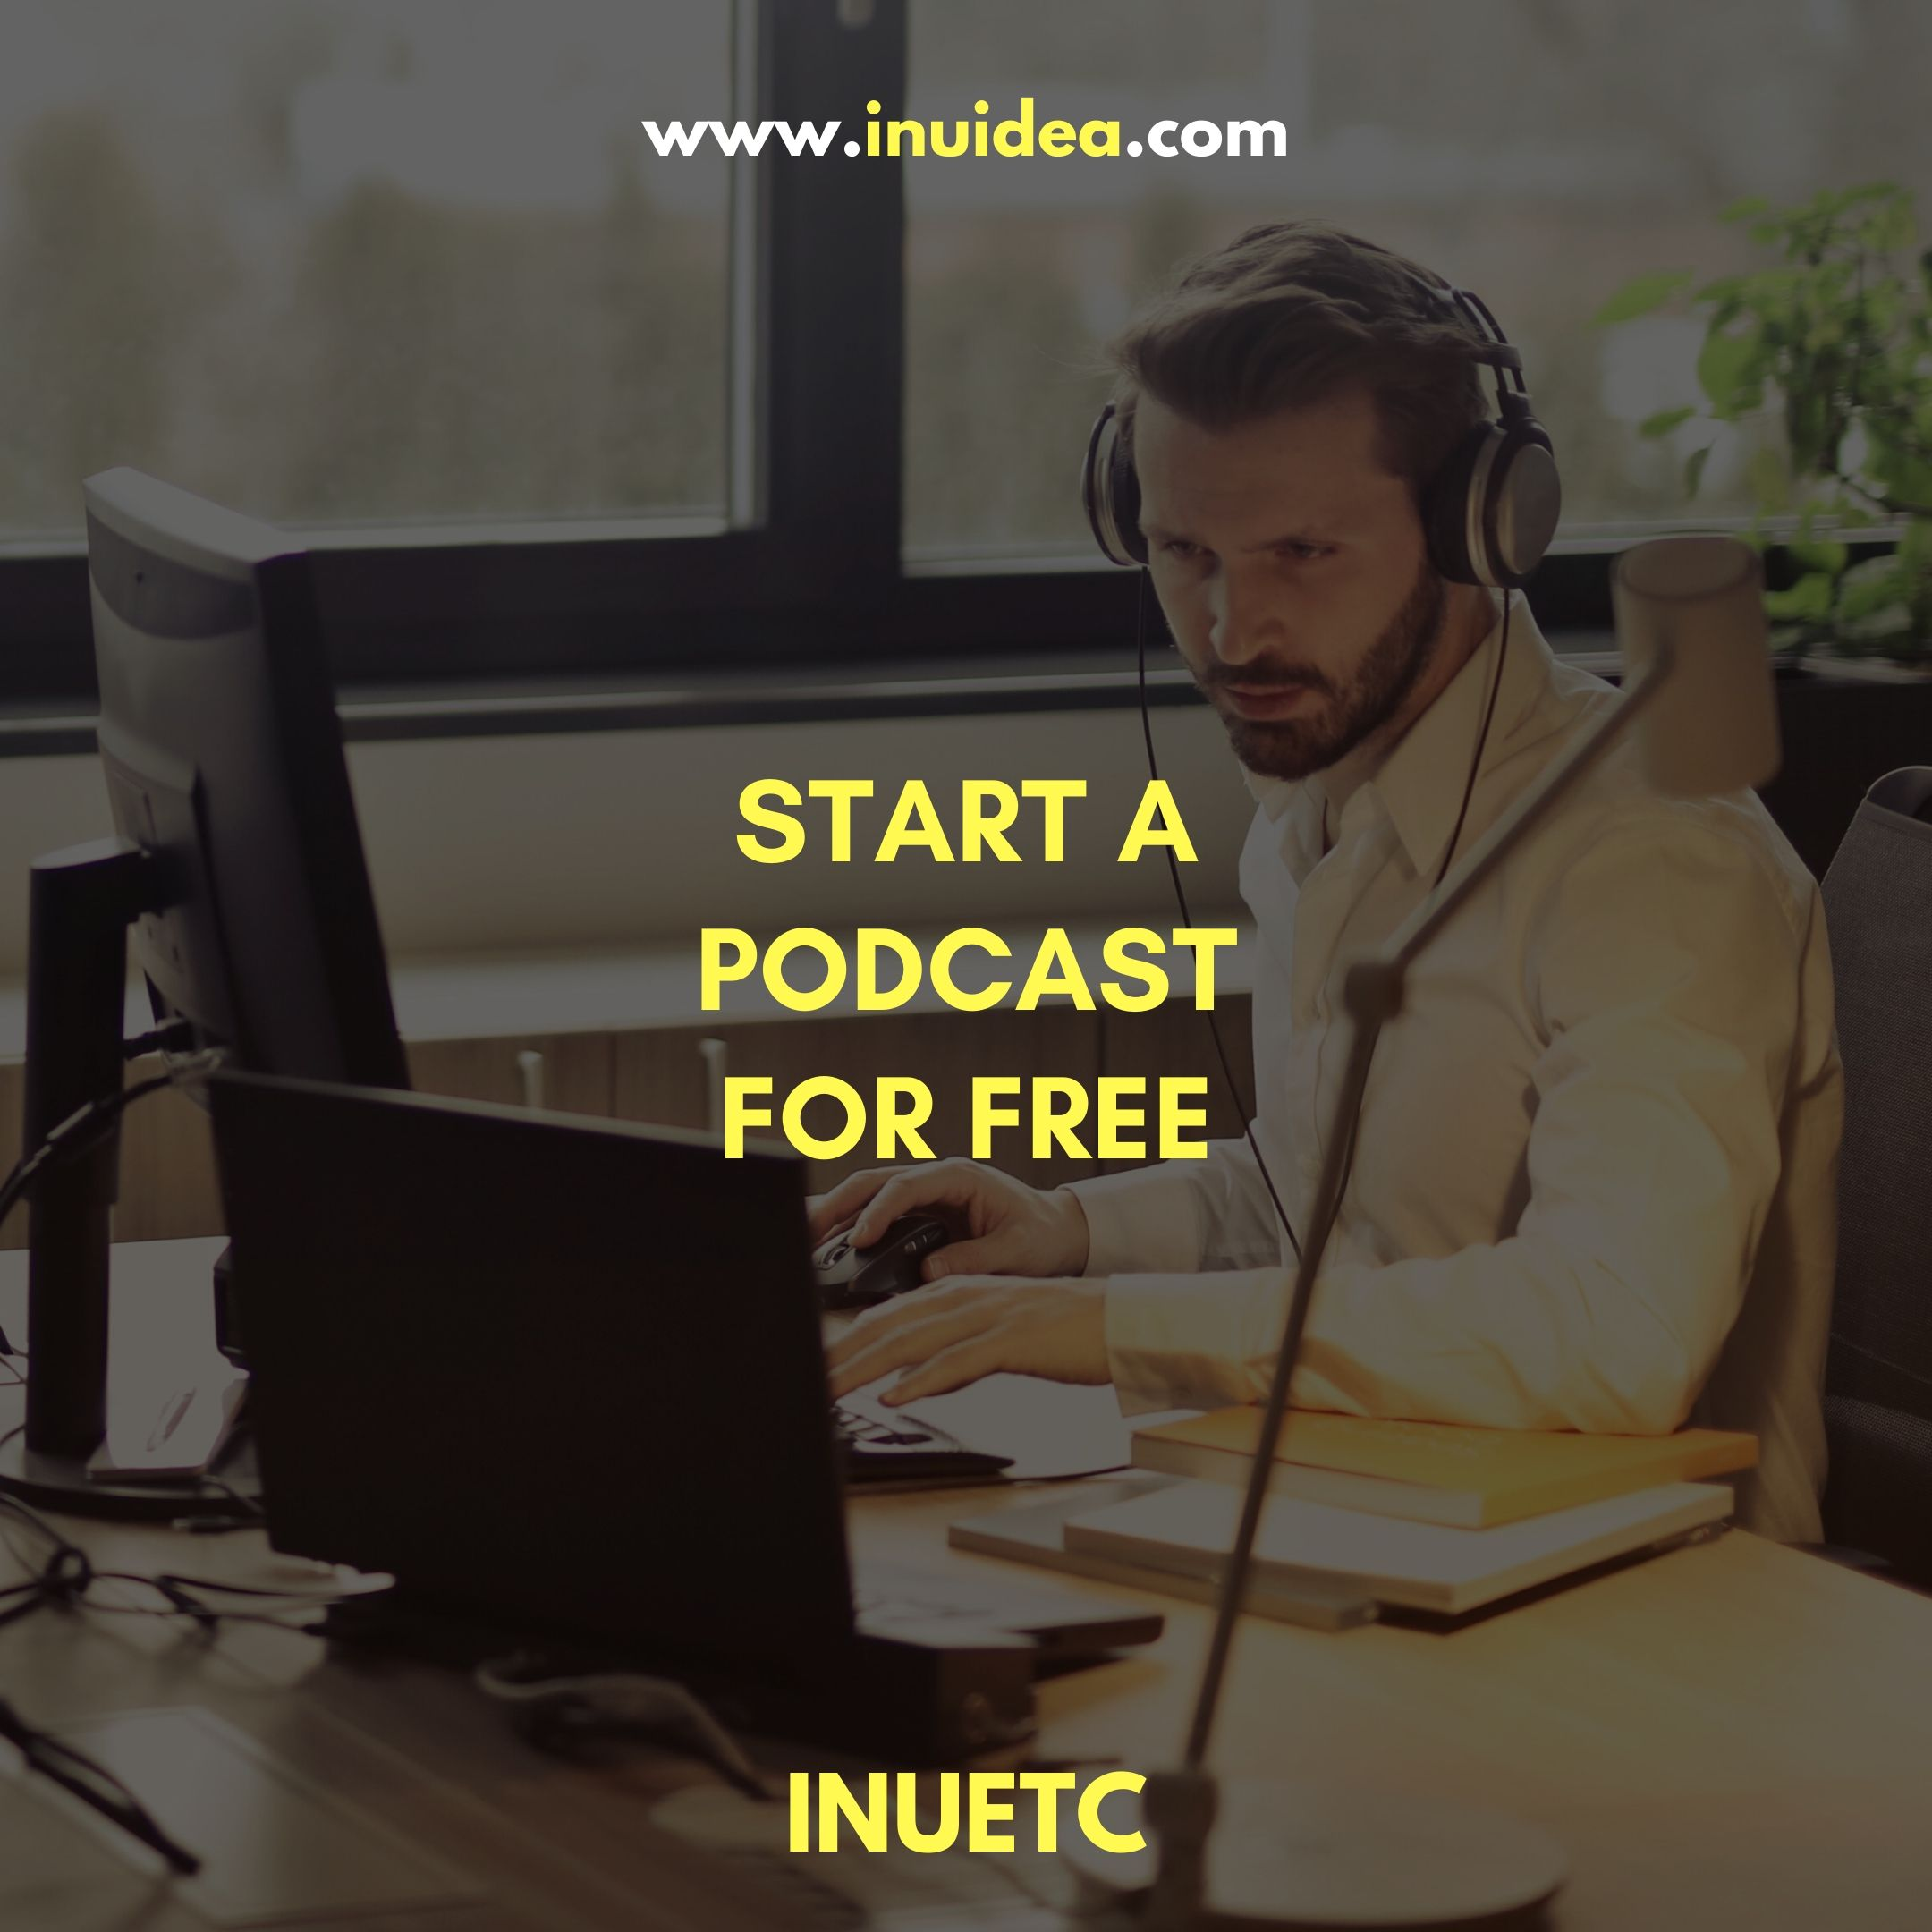 start a podcast for free